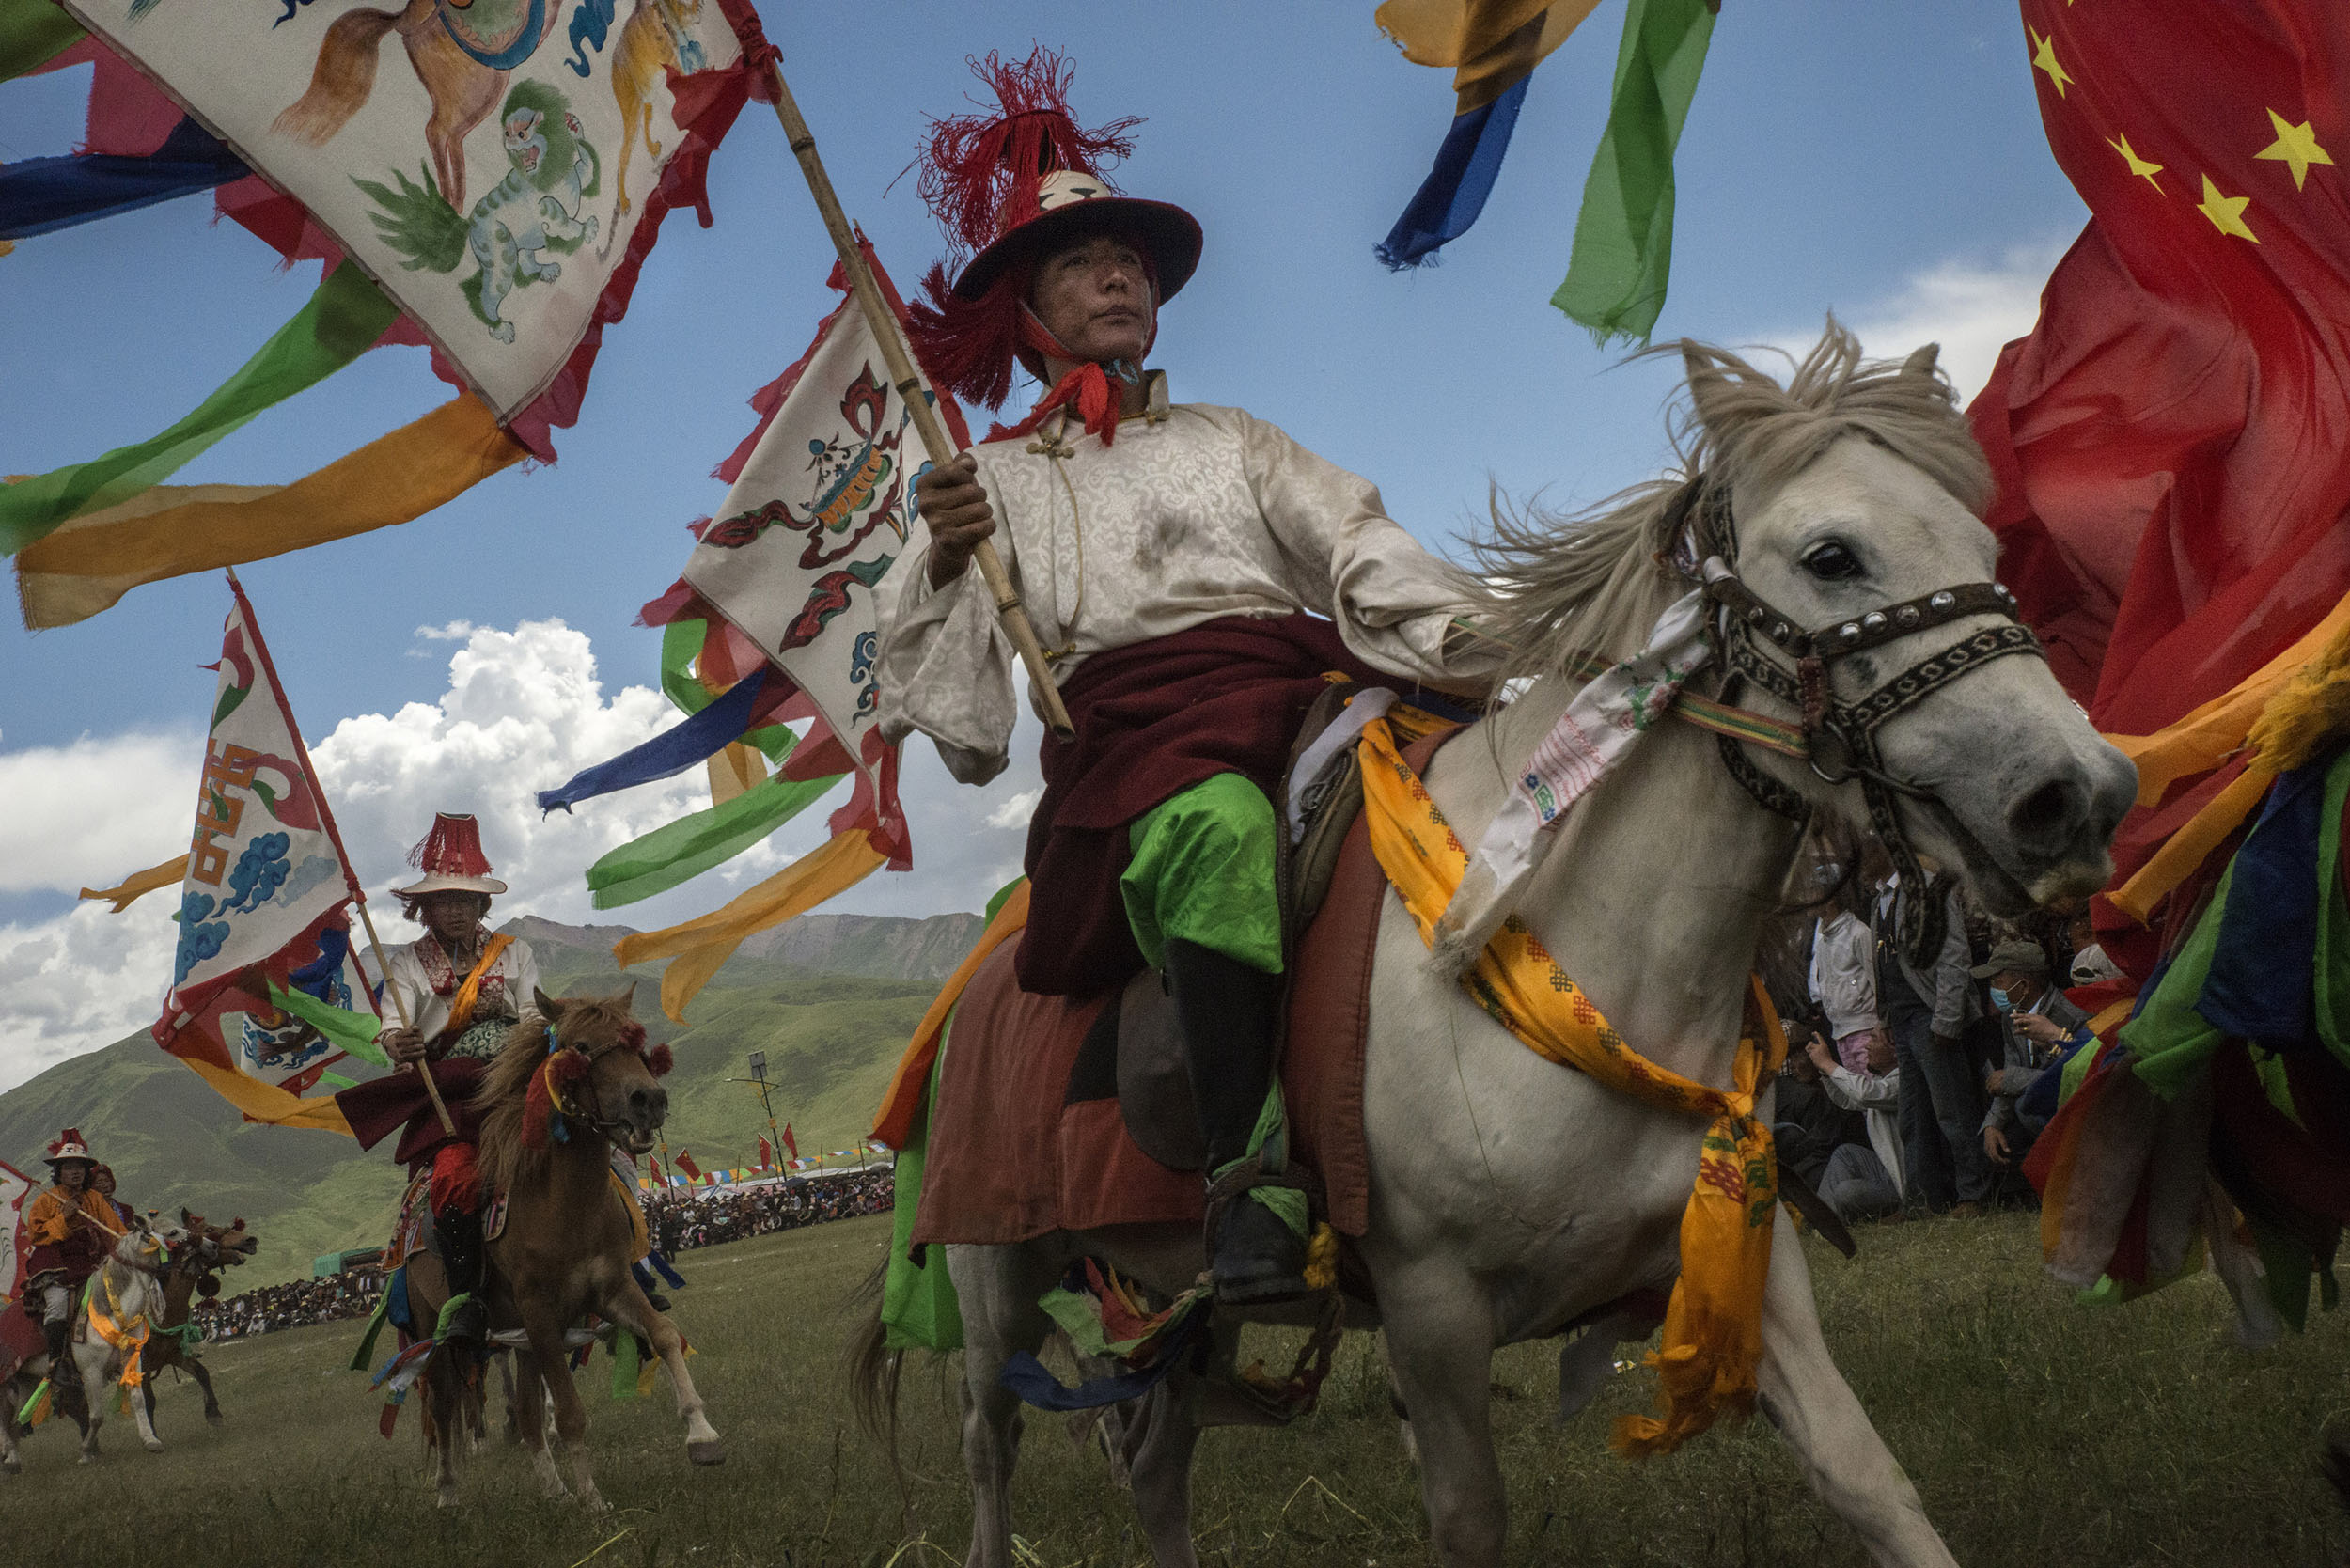 In Yushu, during a horse festival, nomads show their equestrian skills. Horse festivals are traditionally held every summer in the Tibetan grasslands and are part of the nomadic culture.Many have recently been cancelled by the government for fear of unrest. Others, such as the one in Yushu, are sponsored by the local government in an effort to boost tourism and, some say, for propaganda purposes.